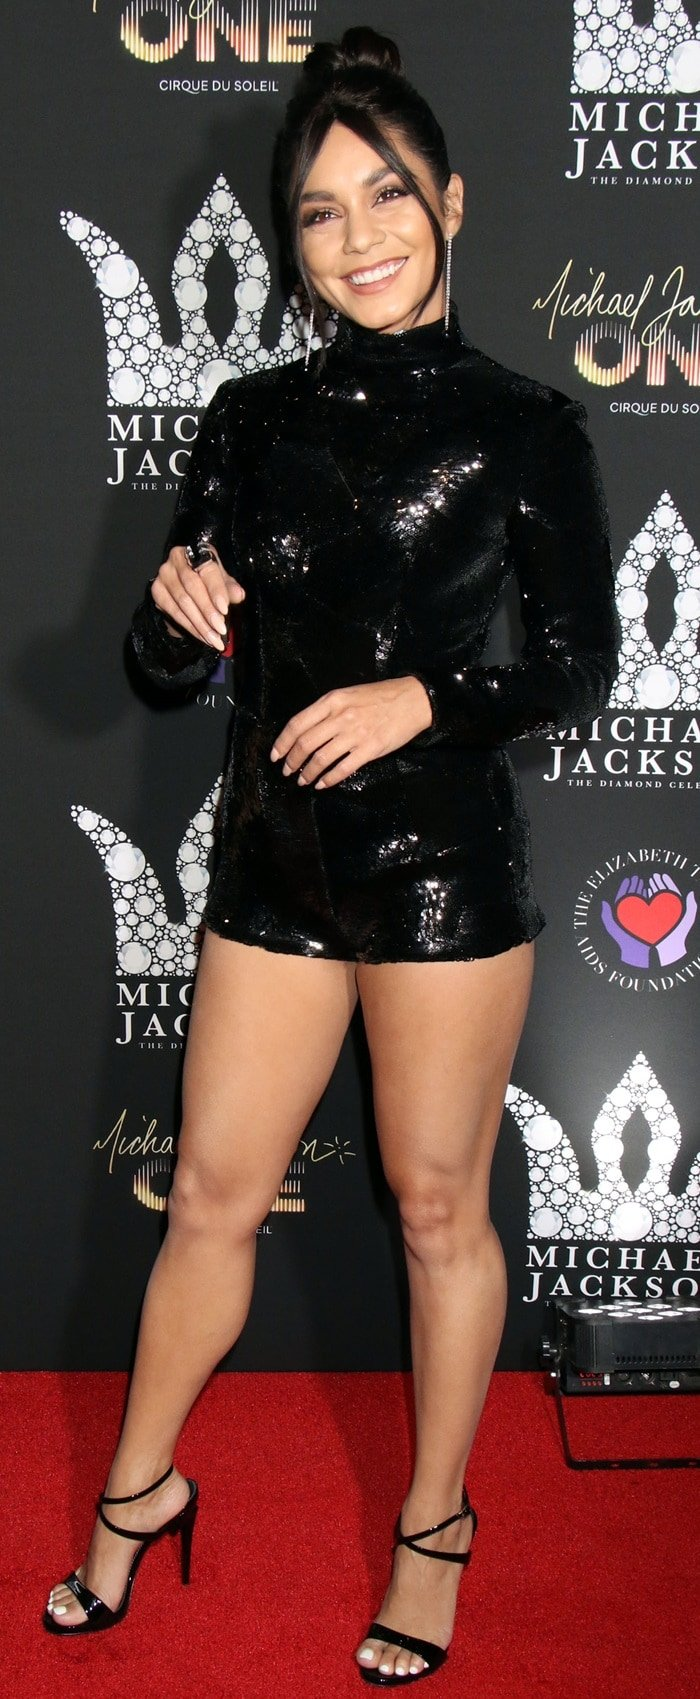 Vanessa Hudgens adds several inches of height with Giuseppe Zanotti's black patent 'G Heel' sculpted sandals